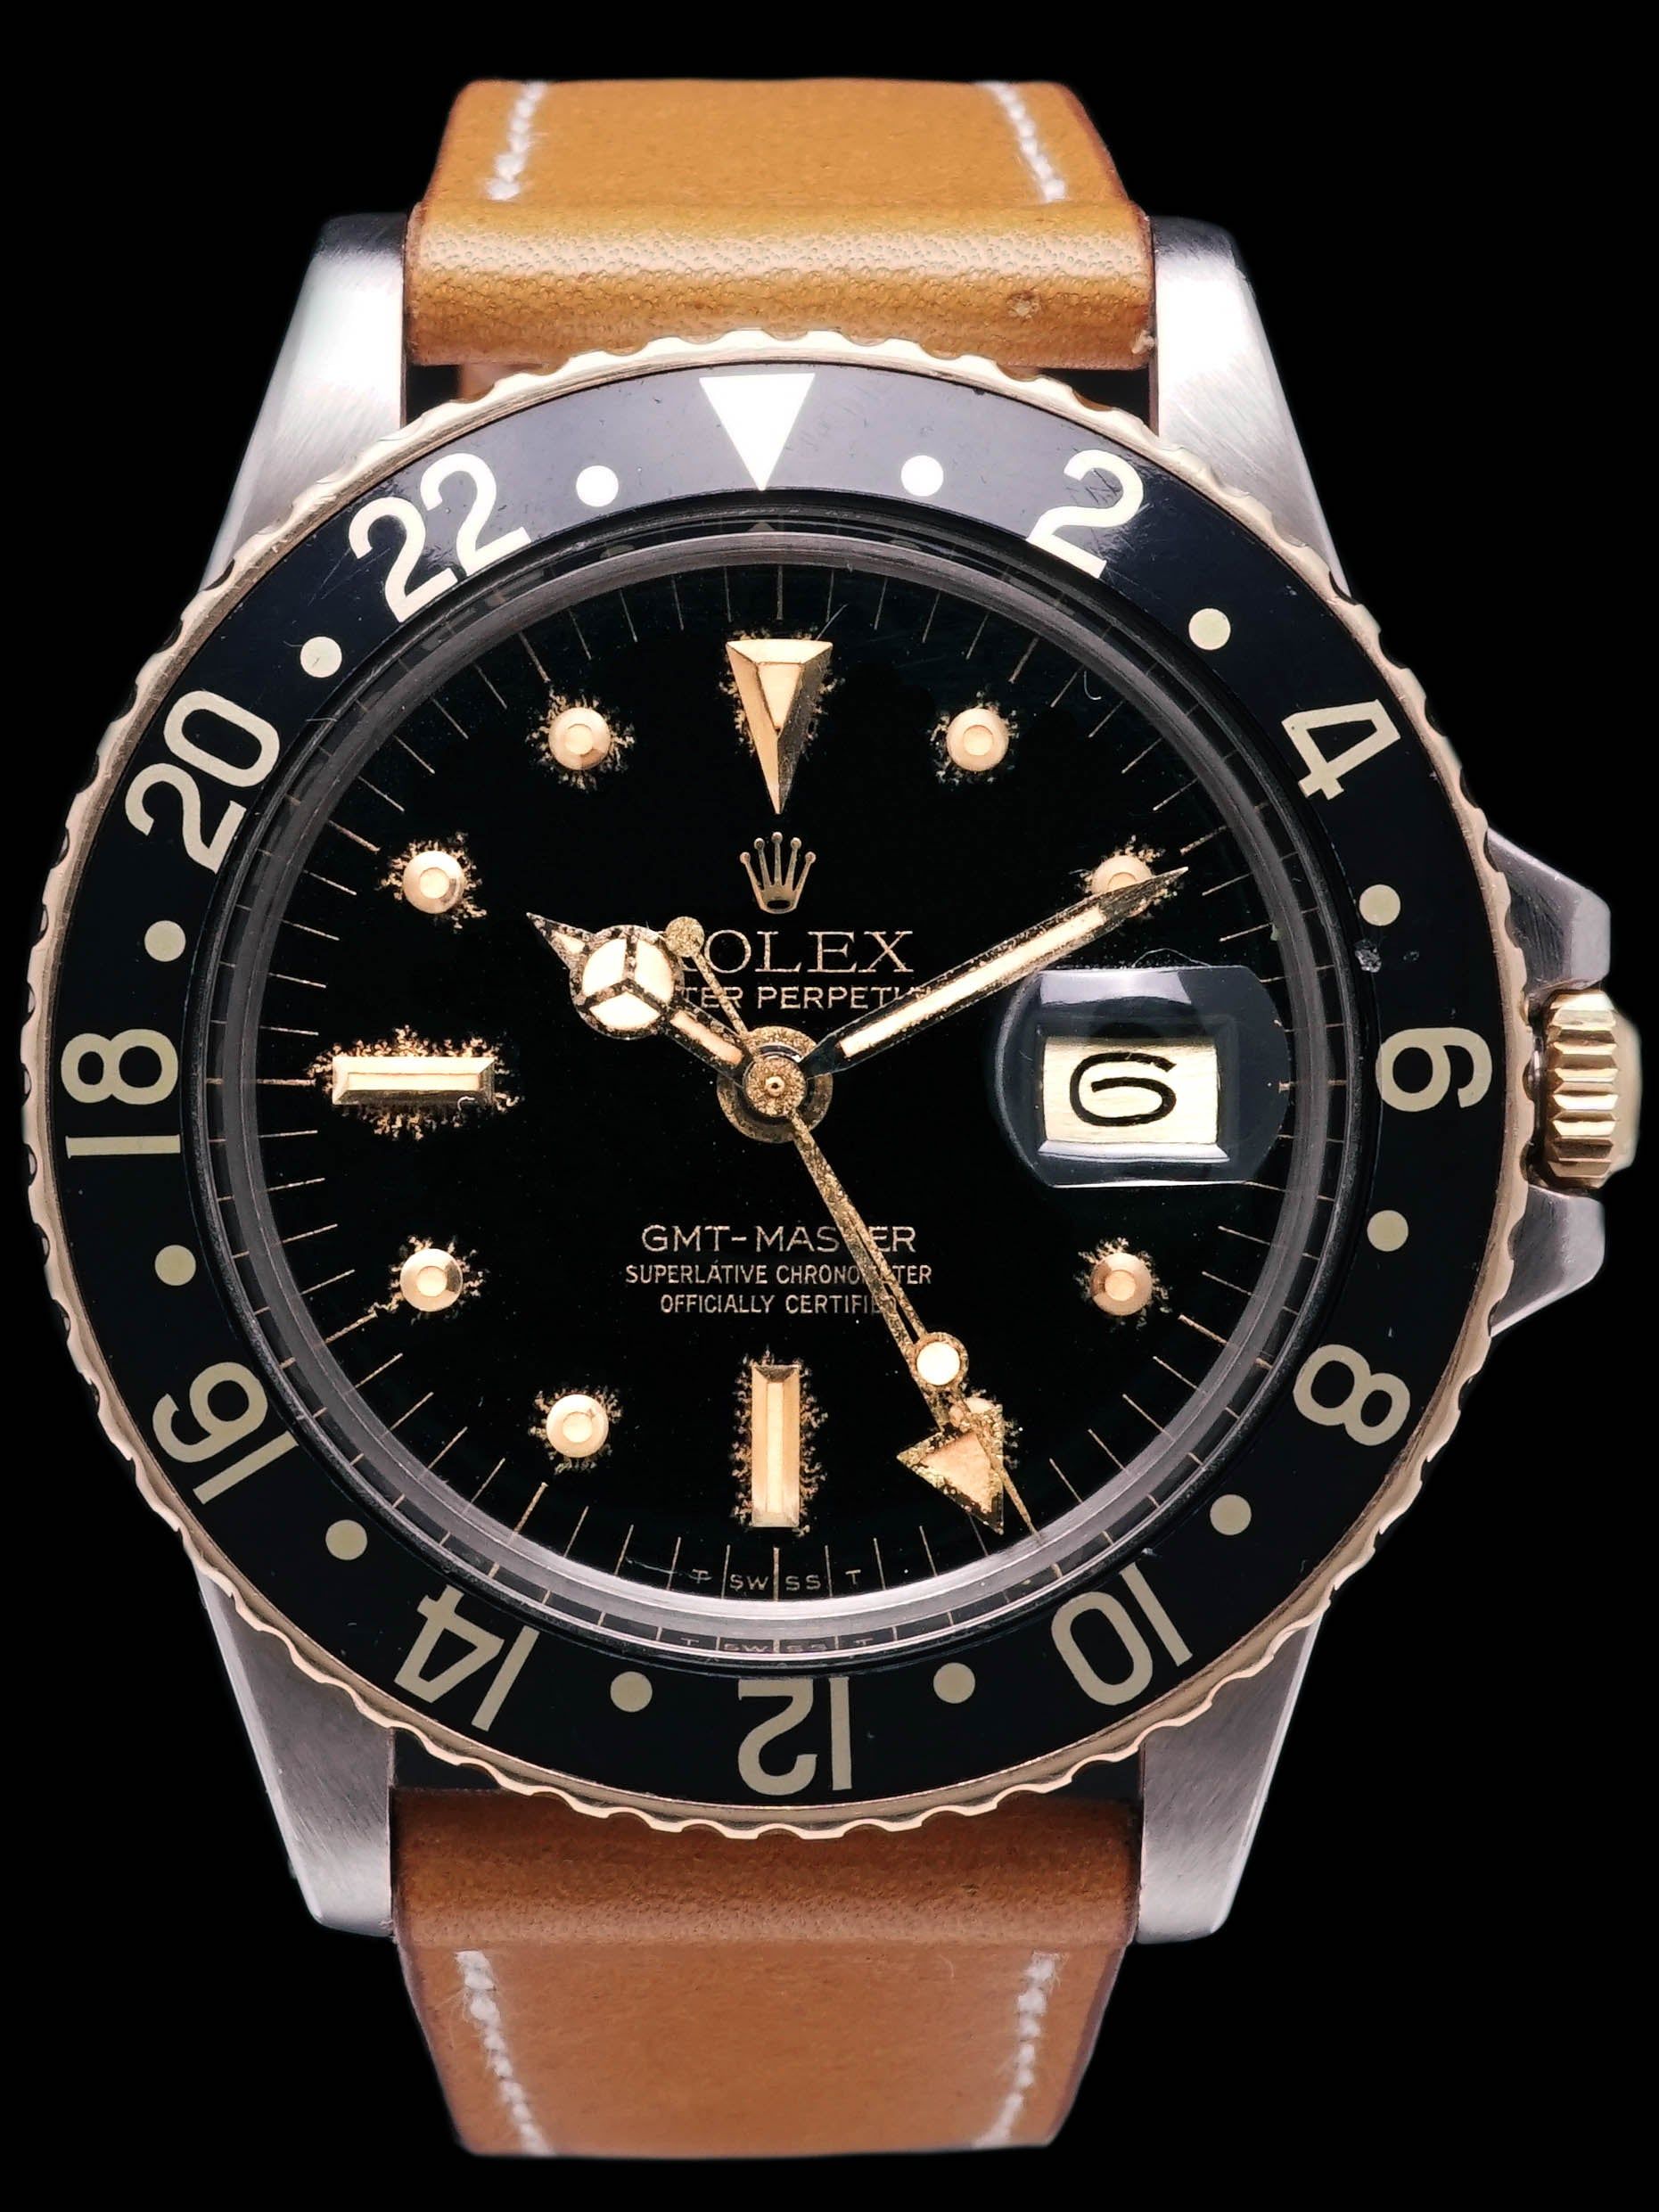 1972 Rolex Two-Tone GMT-Master (Ref. 1675)